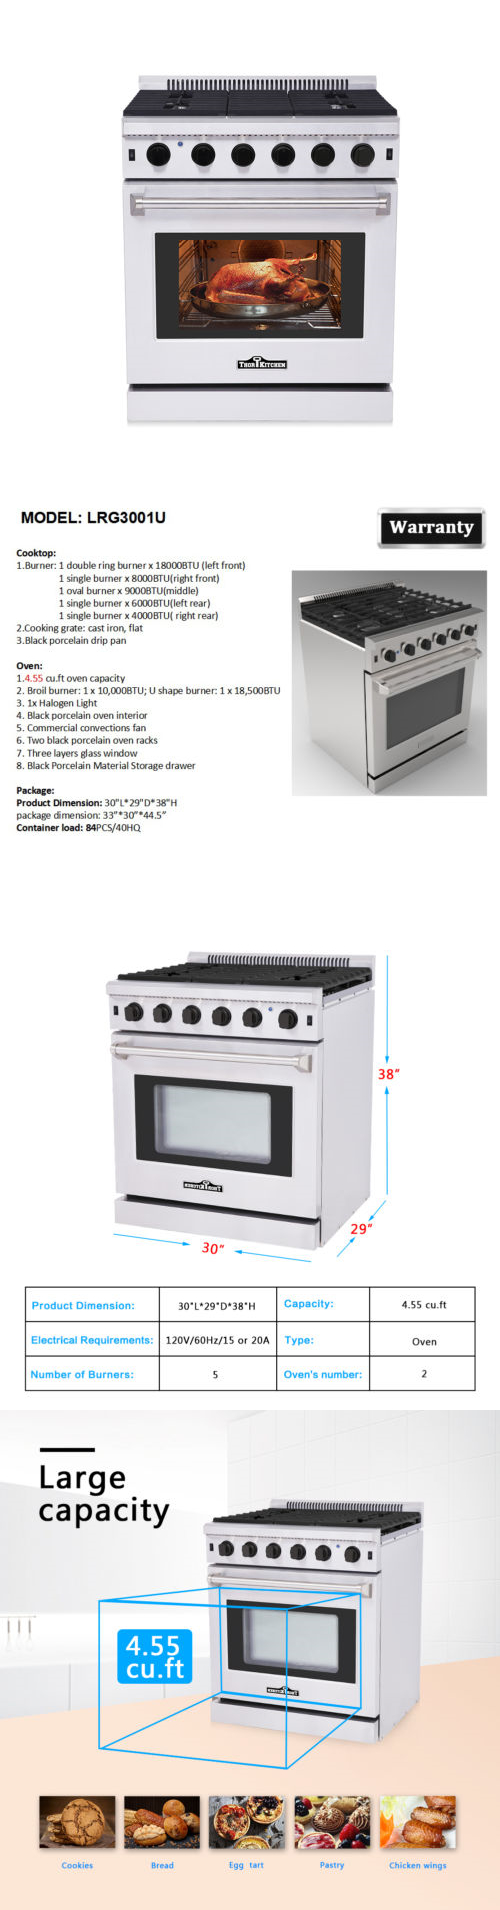 major appliances thor kitchen lrg3001u 30 stainless steel gas range oven with 5 burner